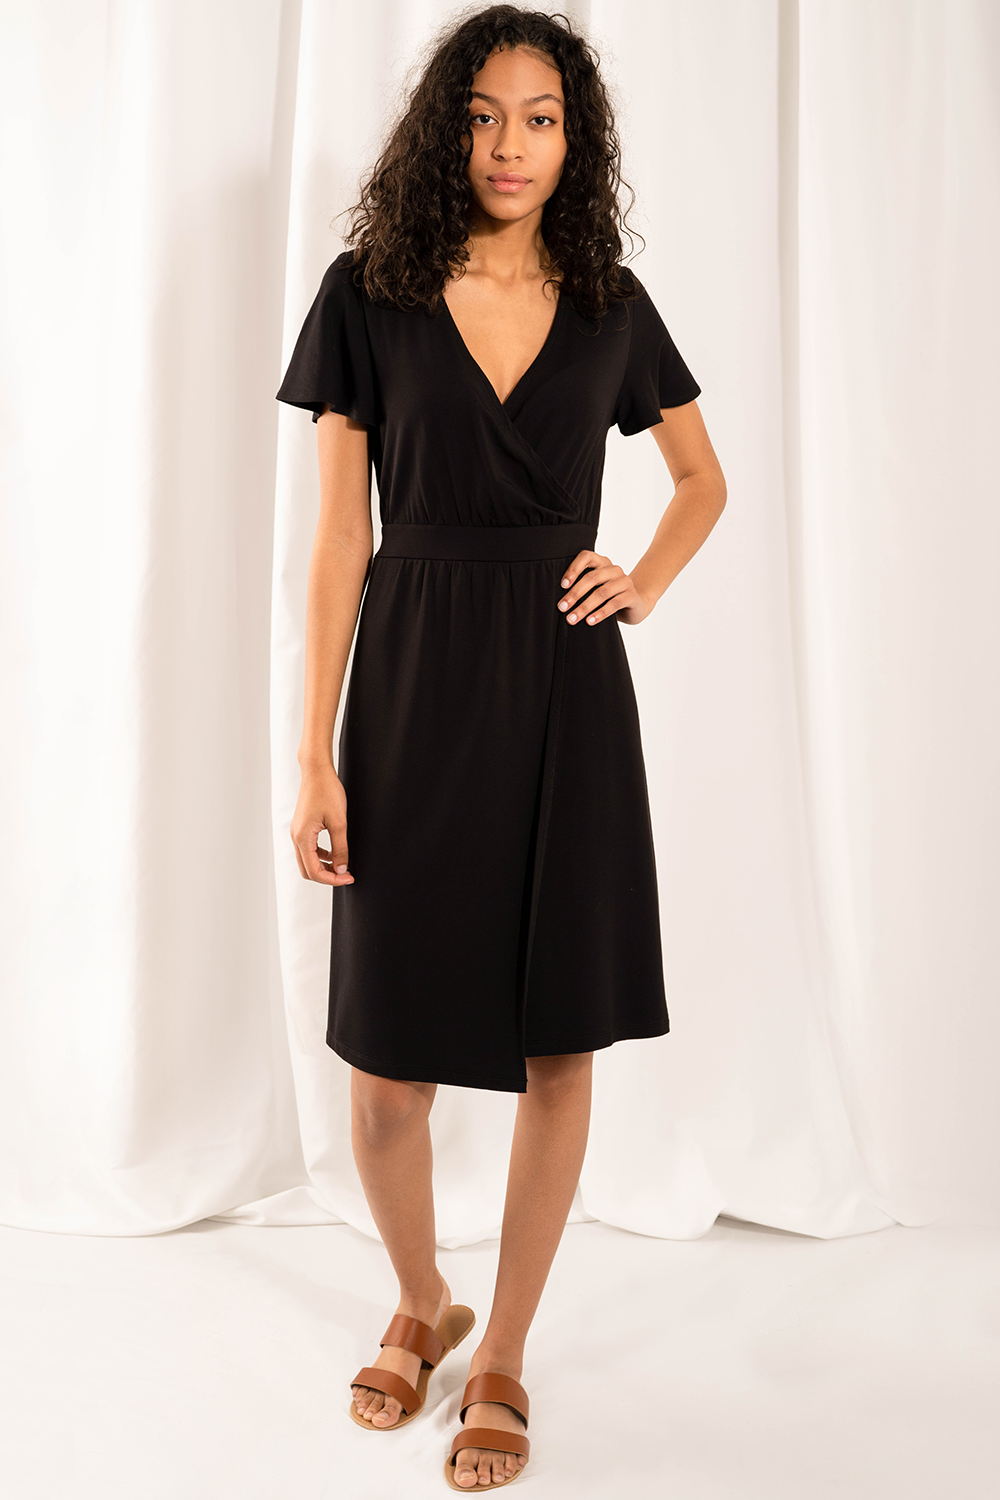 The elegant Taya Wrap Dress raises the bar on style and comfort. The fixed tie-waist detail means that you can easily slip the dress over your body! With sleeves for coverage, a flattering V-neck, and a side slit for movement, you will Love wearing this dress! Fabrication: 95% Viscose from bamboo, 5% Spandex   LNBF colour Black $95.00